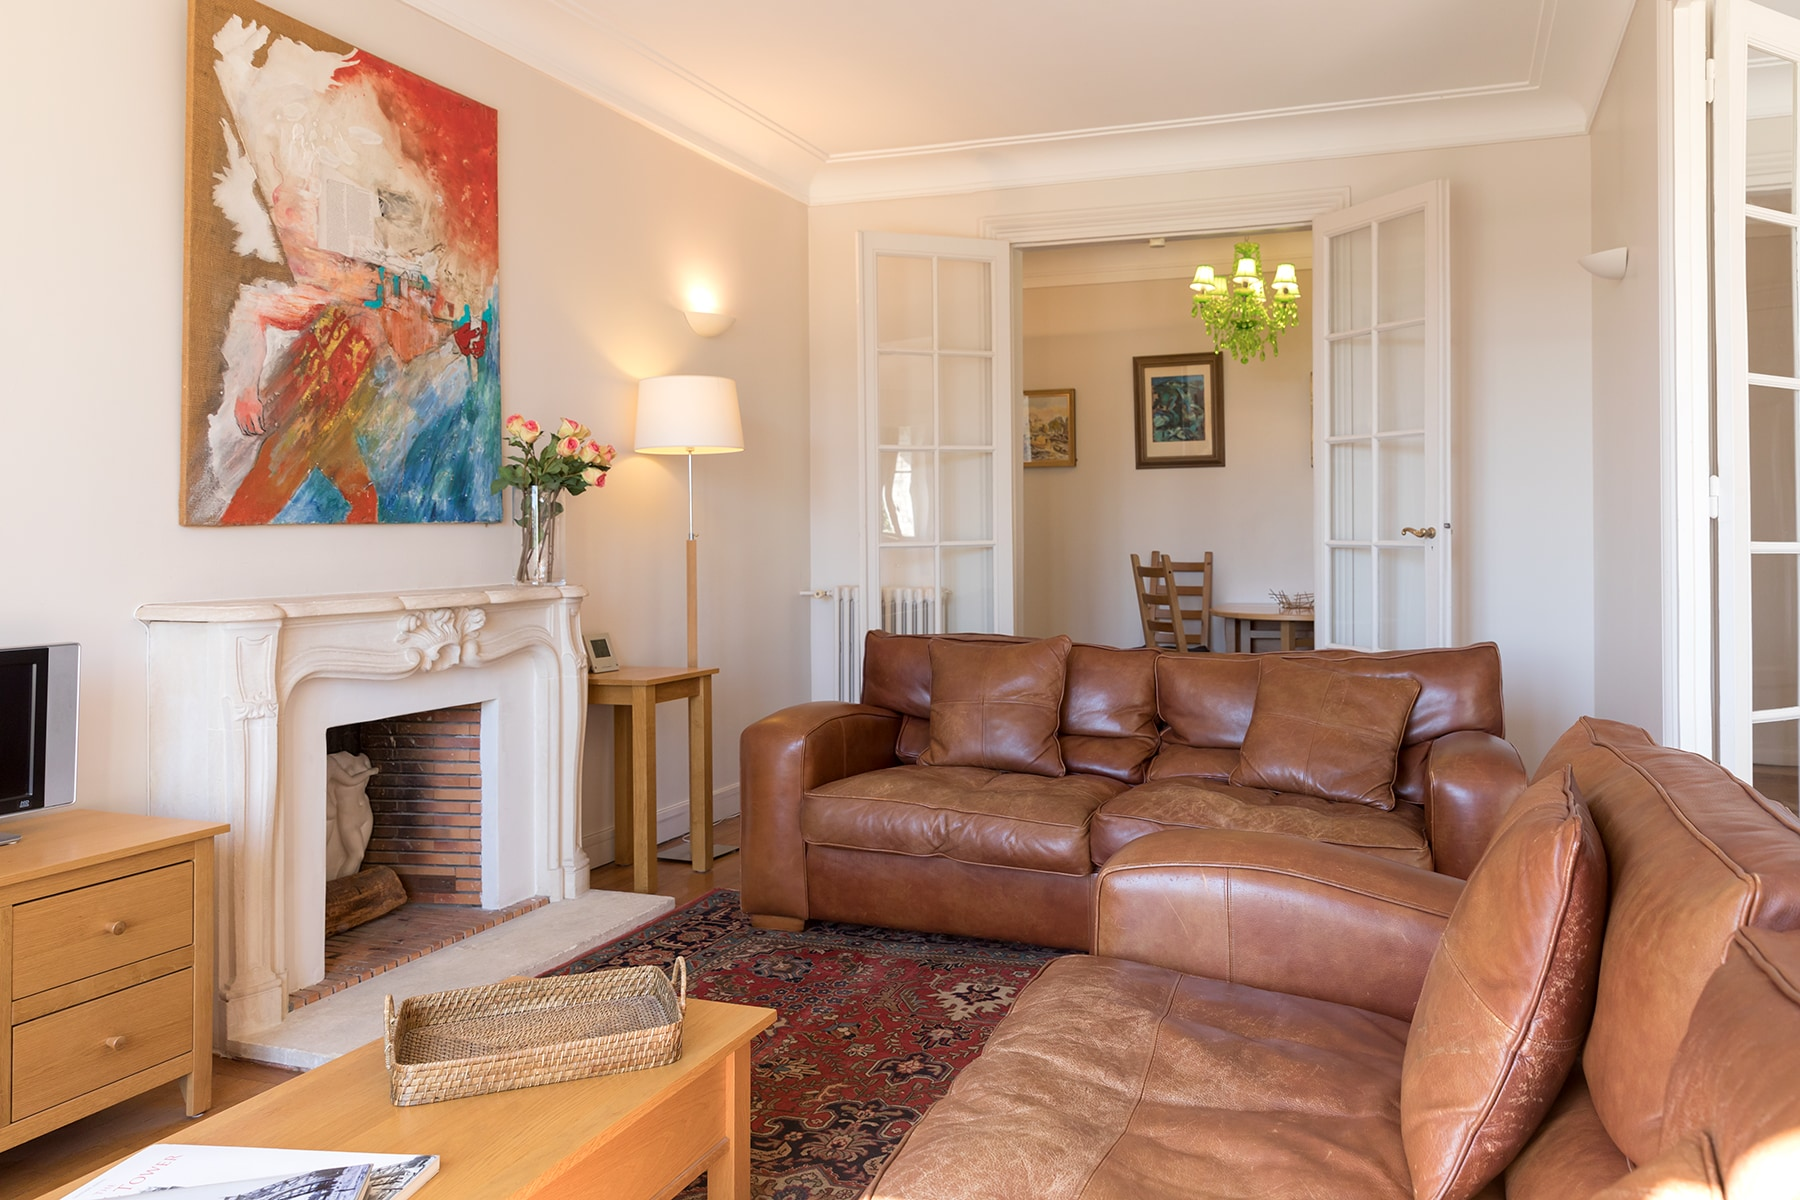 Property Image 1 - Peaceful One Bedroom Apartment Near the Eiffel Tower